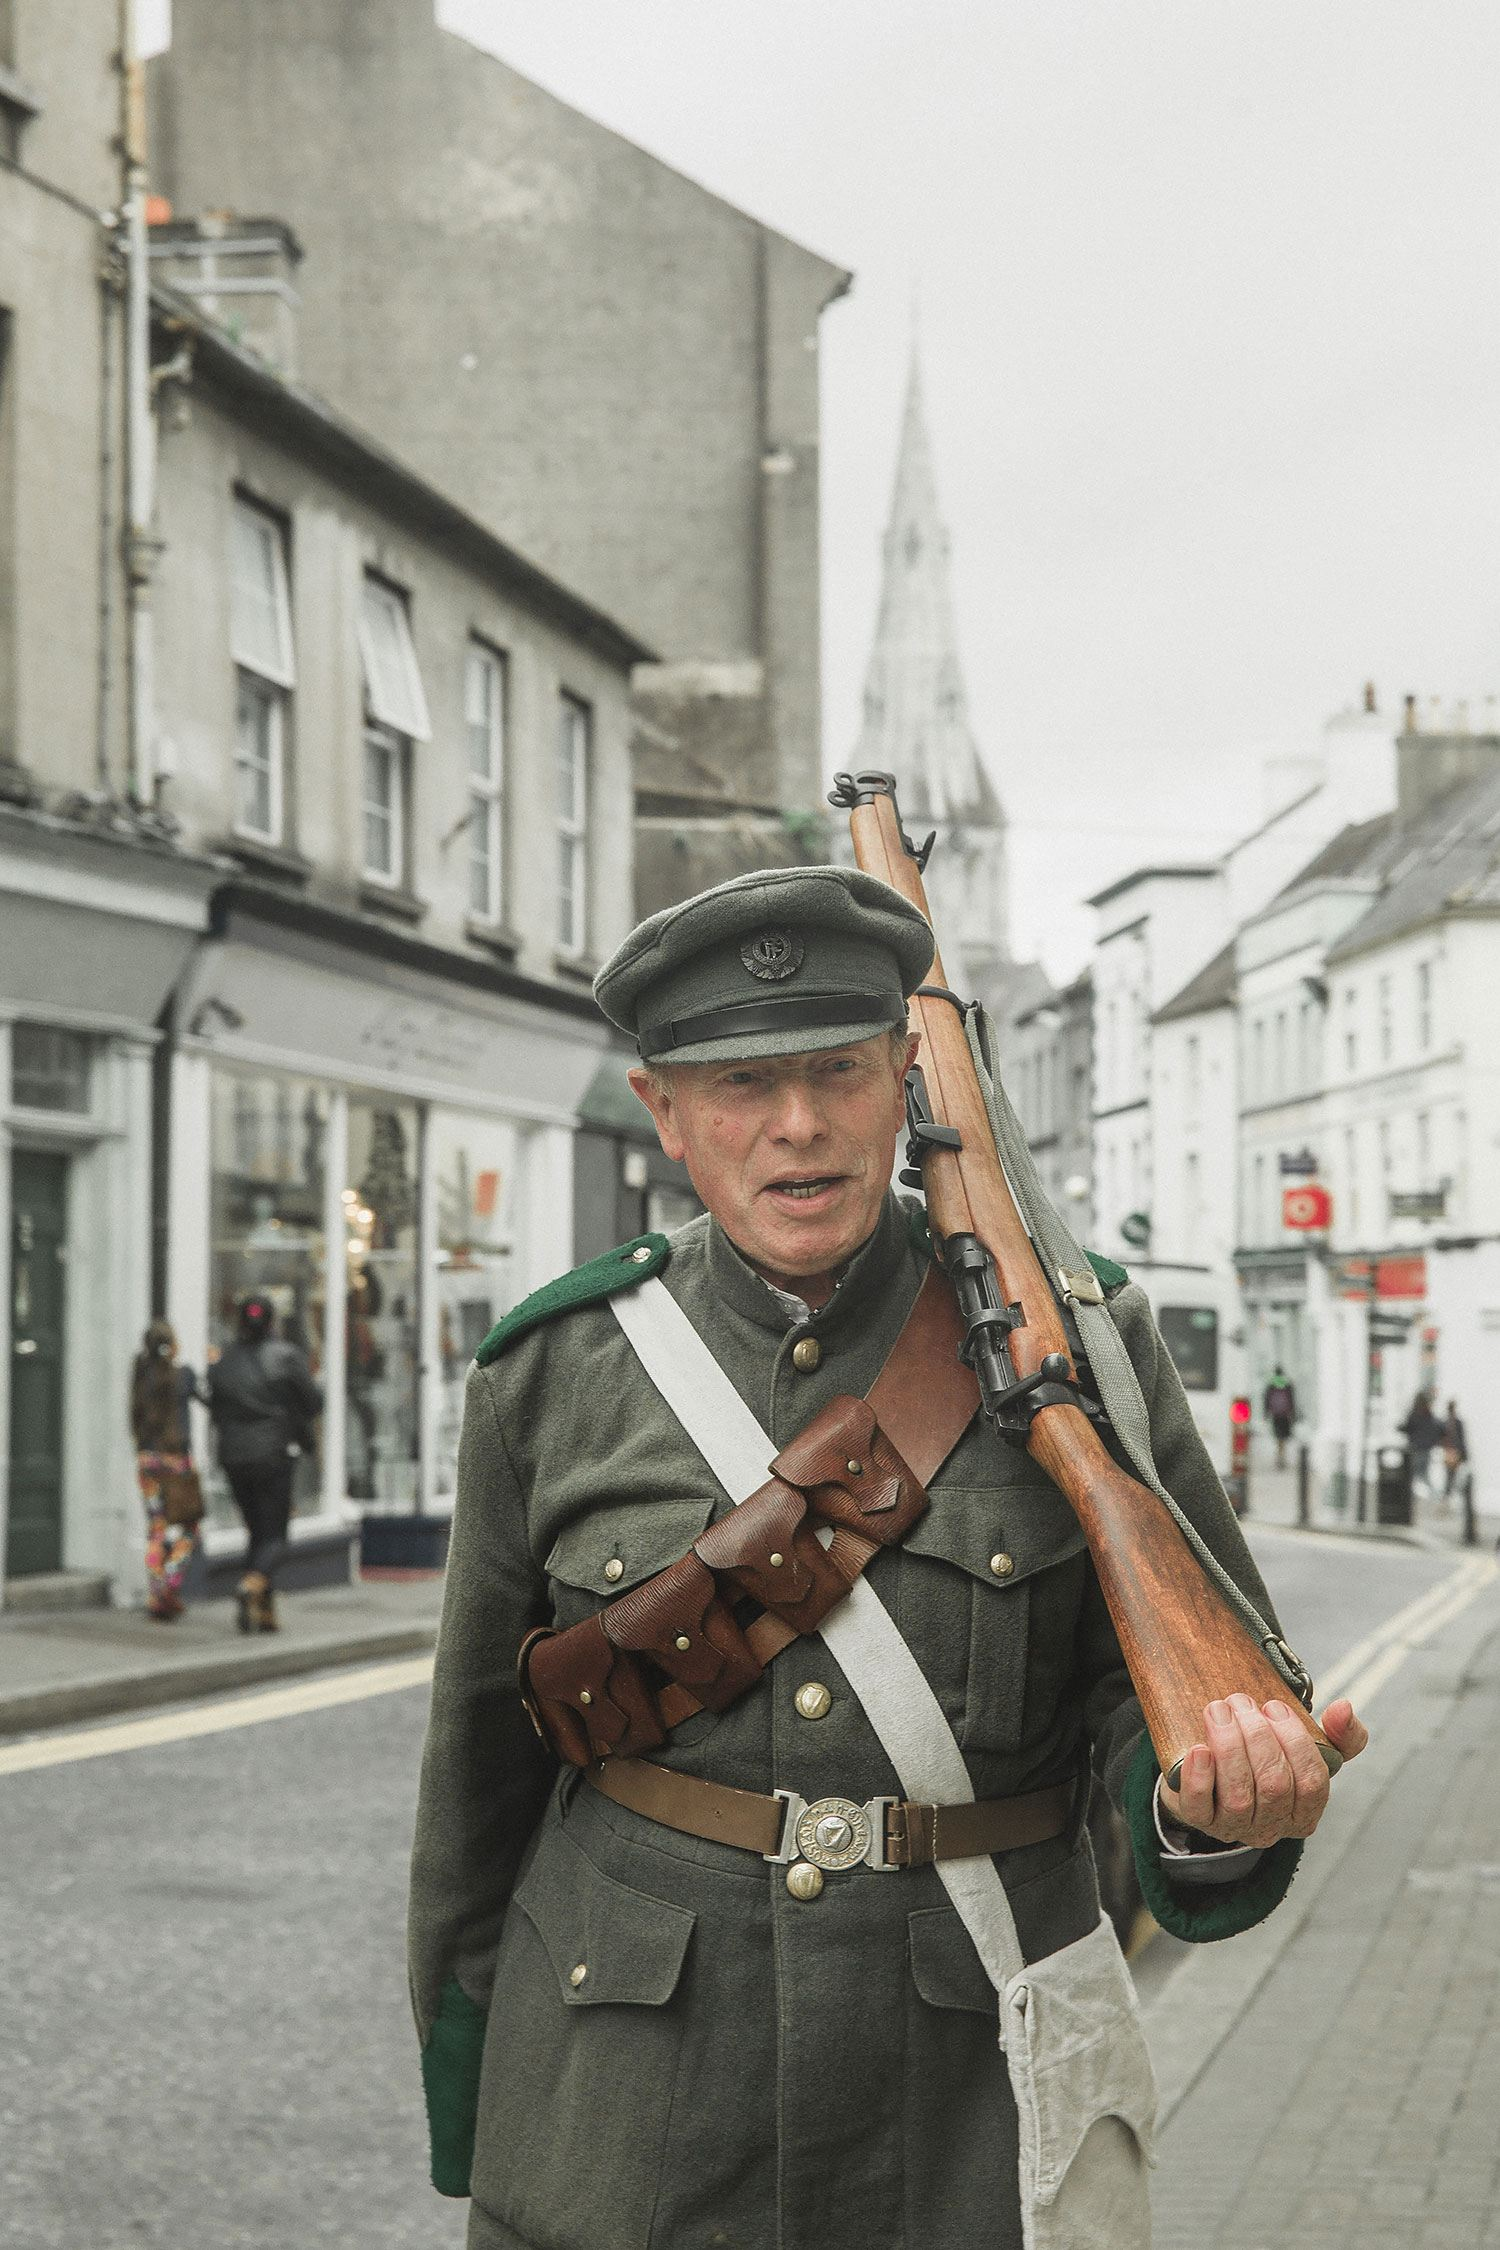 Wexford irish NRA soldiers